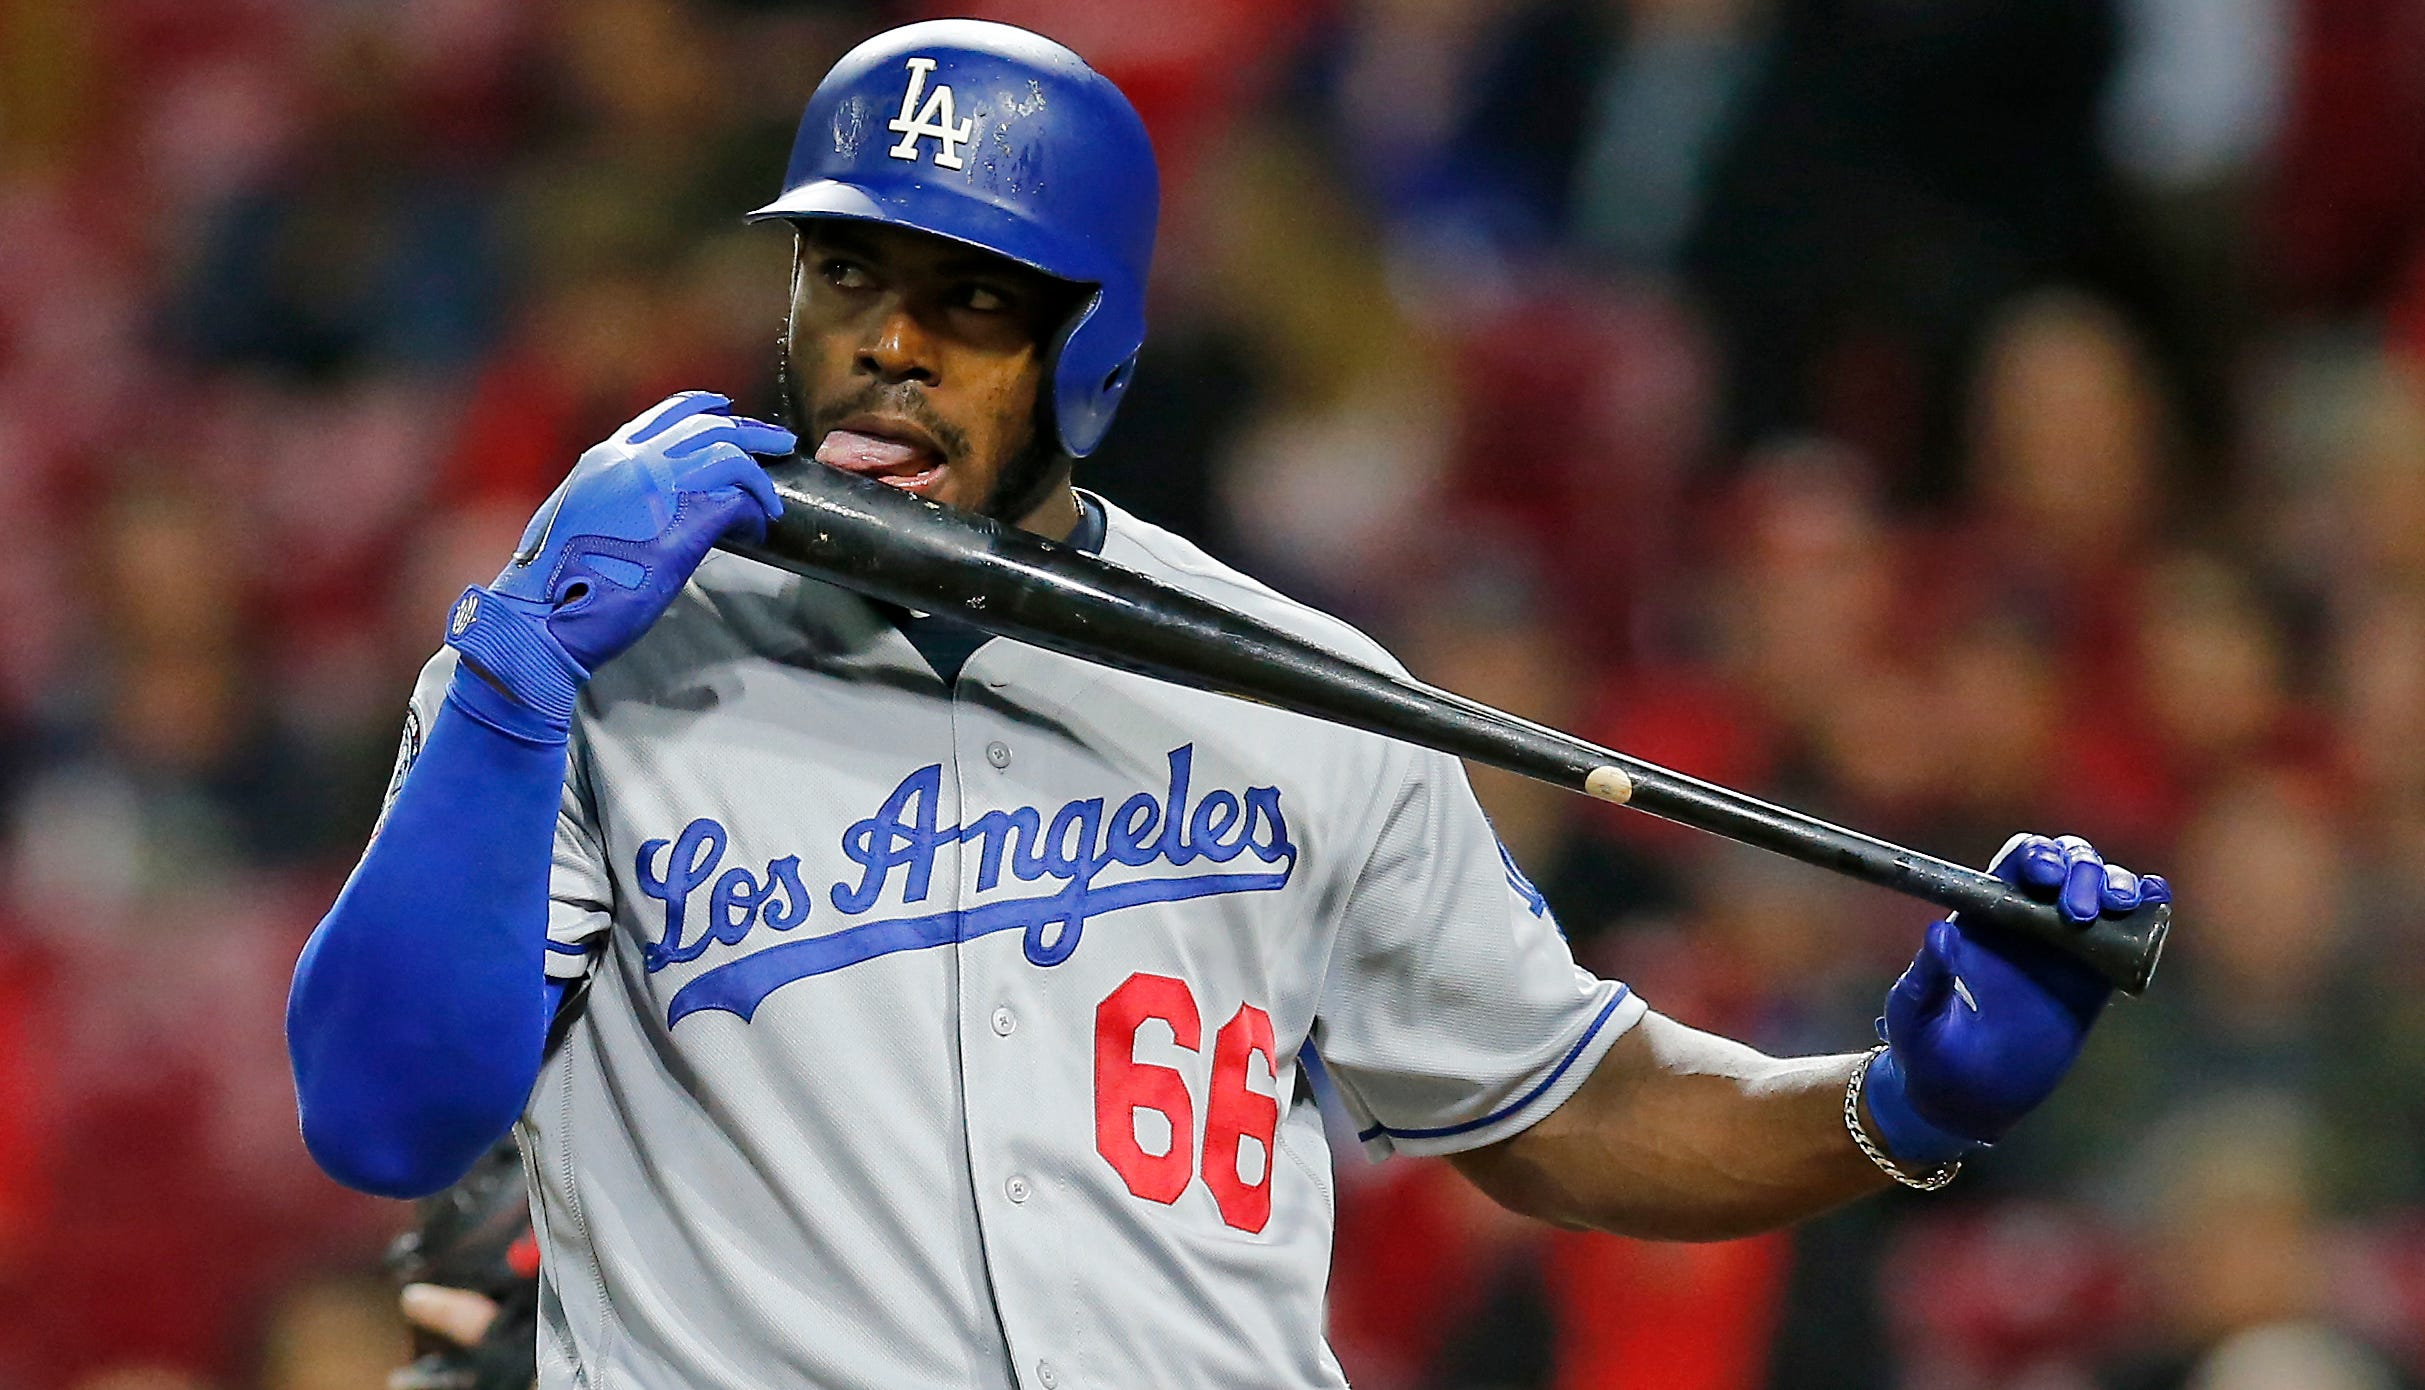 Los Angeles Dodgers right fielder Yasiel Puig (66) licks his bat after fouling off a pitch with the bases loaded in the top of the seventh inning of the MLB National League game between the Cincinnati Reds and the Los Angeles Dodgers at Great American Ball Park in downtown Cincinnati on Monday, Sept. 10, 2018. The Reds won the opening game of the series, 10-6.